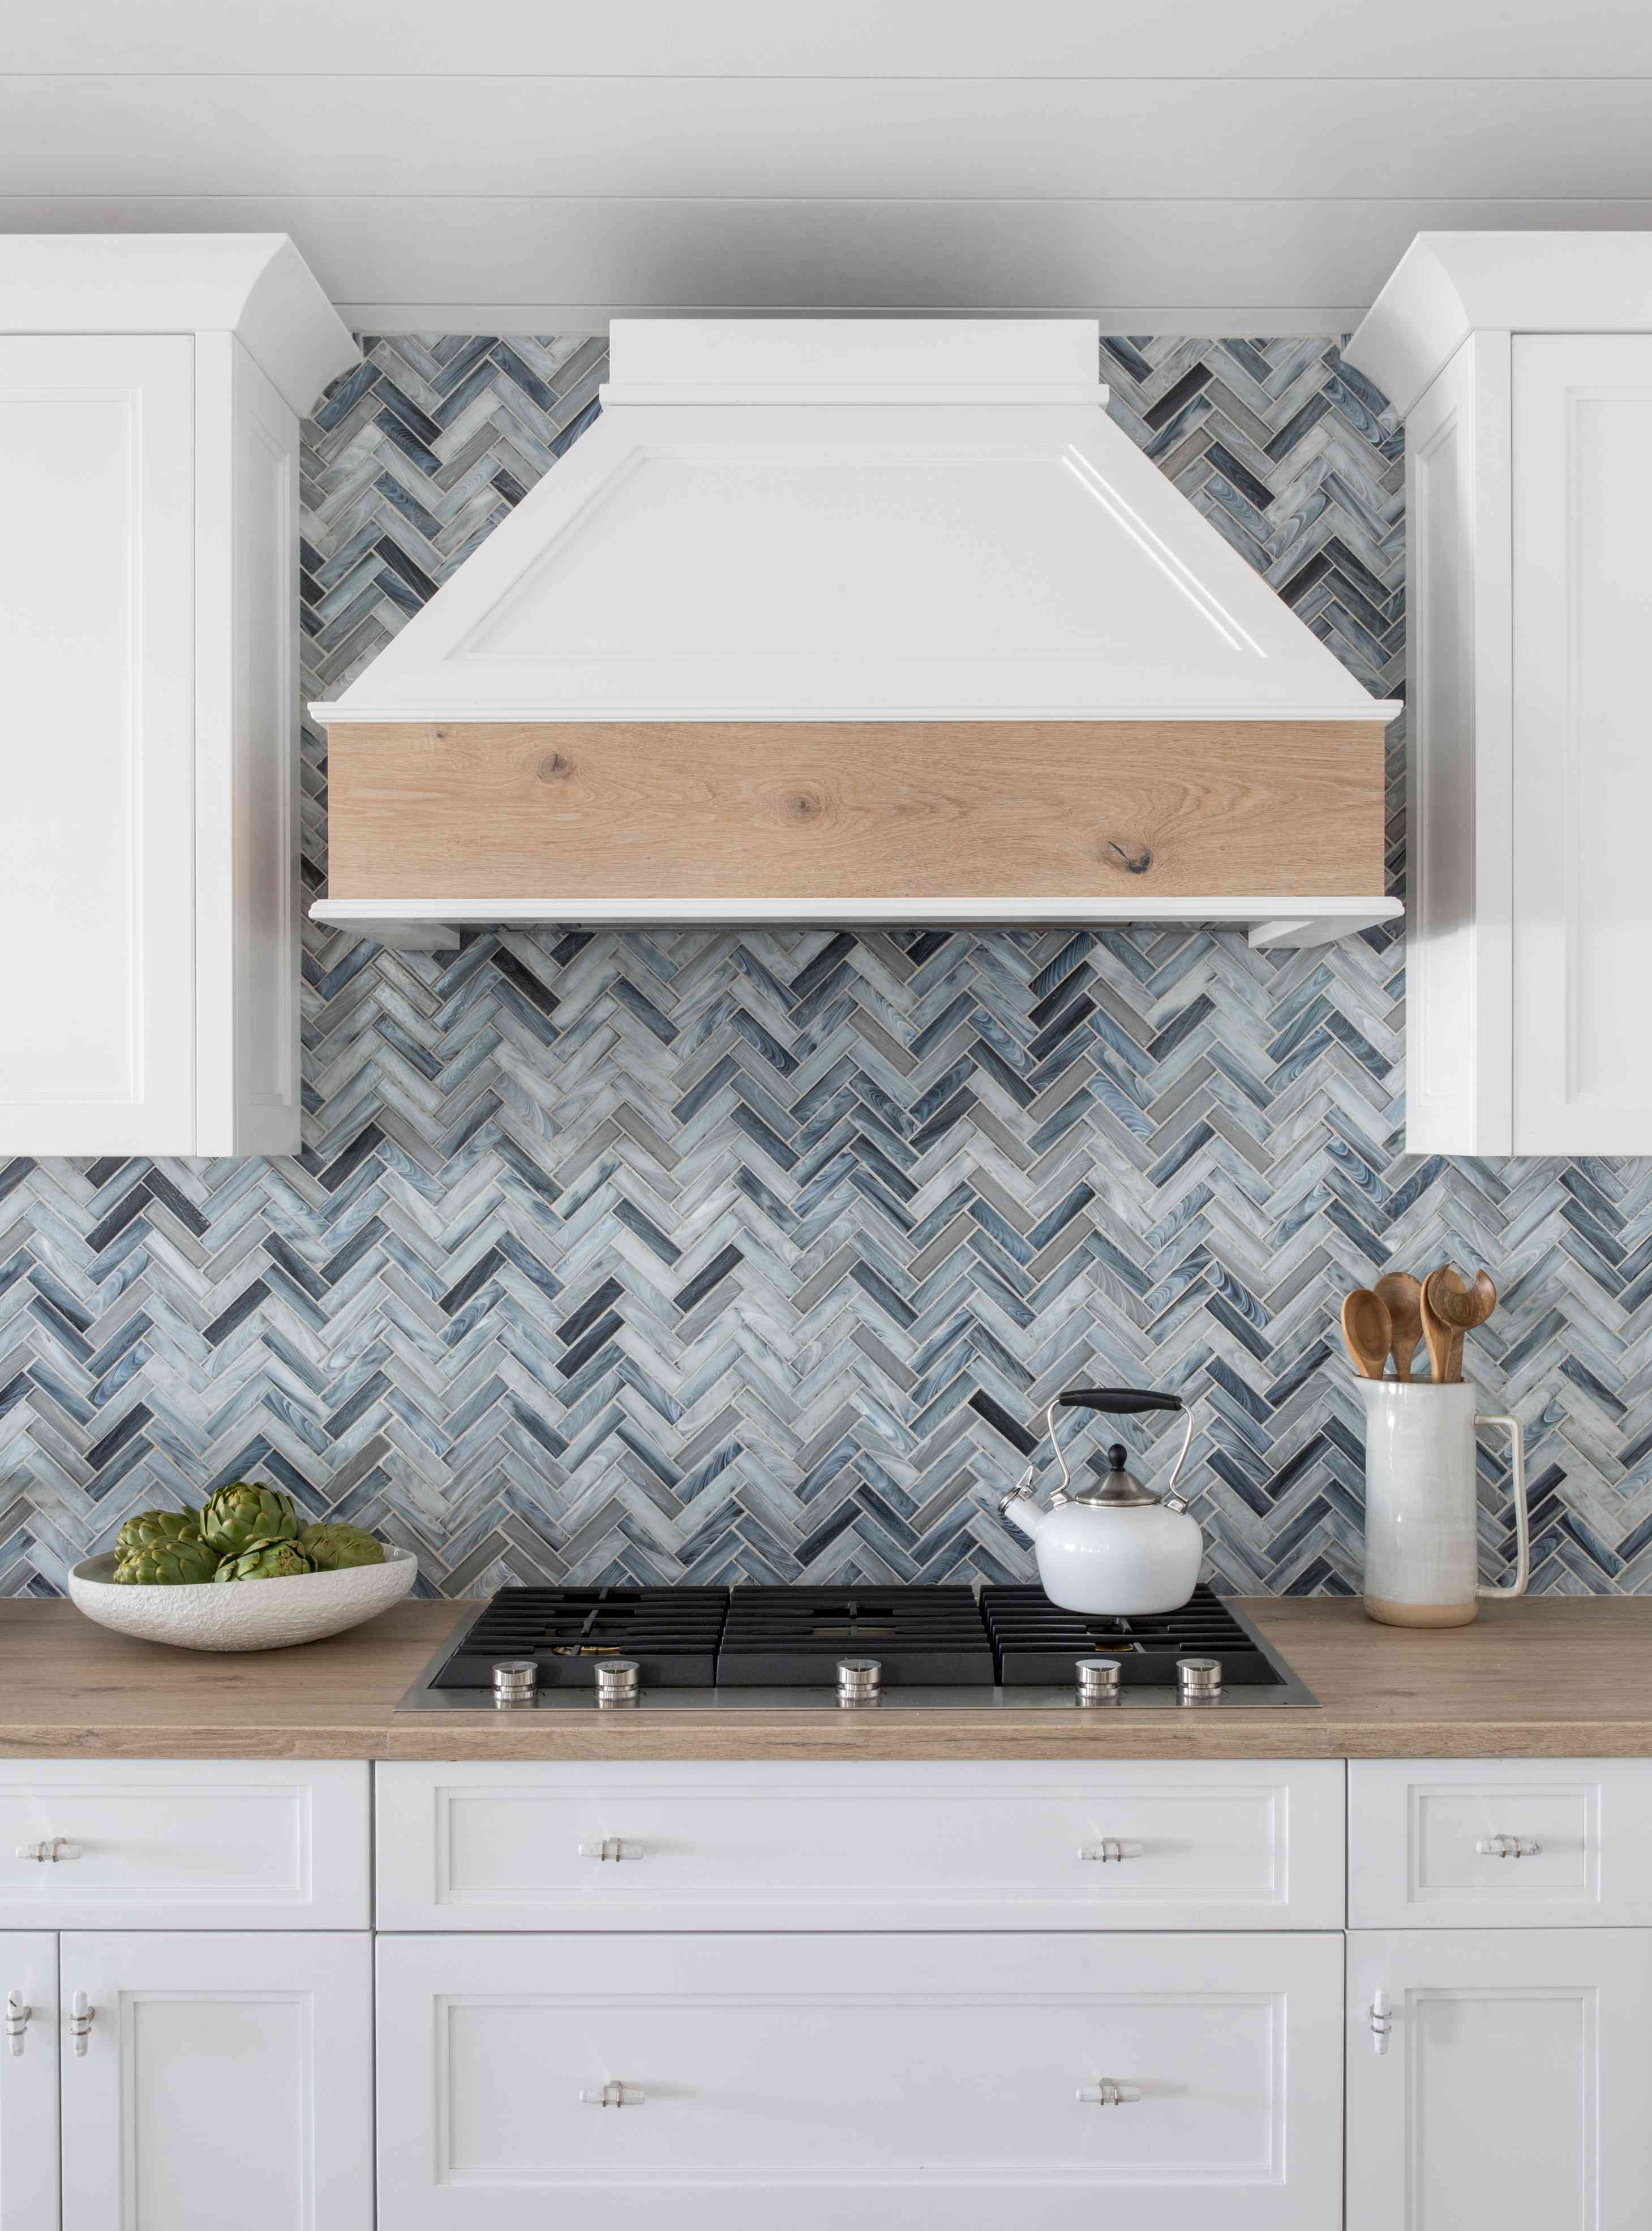 the range cover in the Long Beach Island kitchen of Karen B. Wolfe features white oak flooring